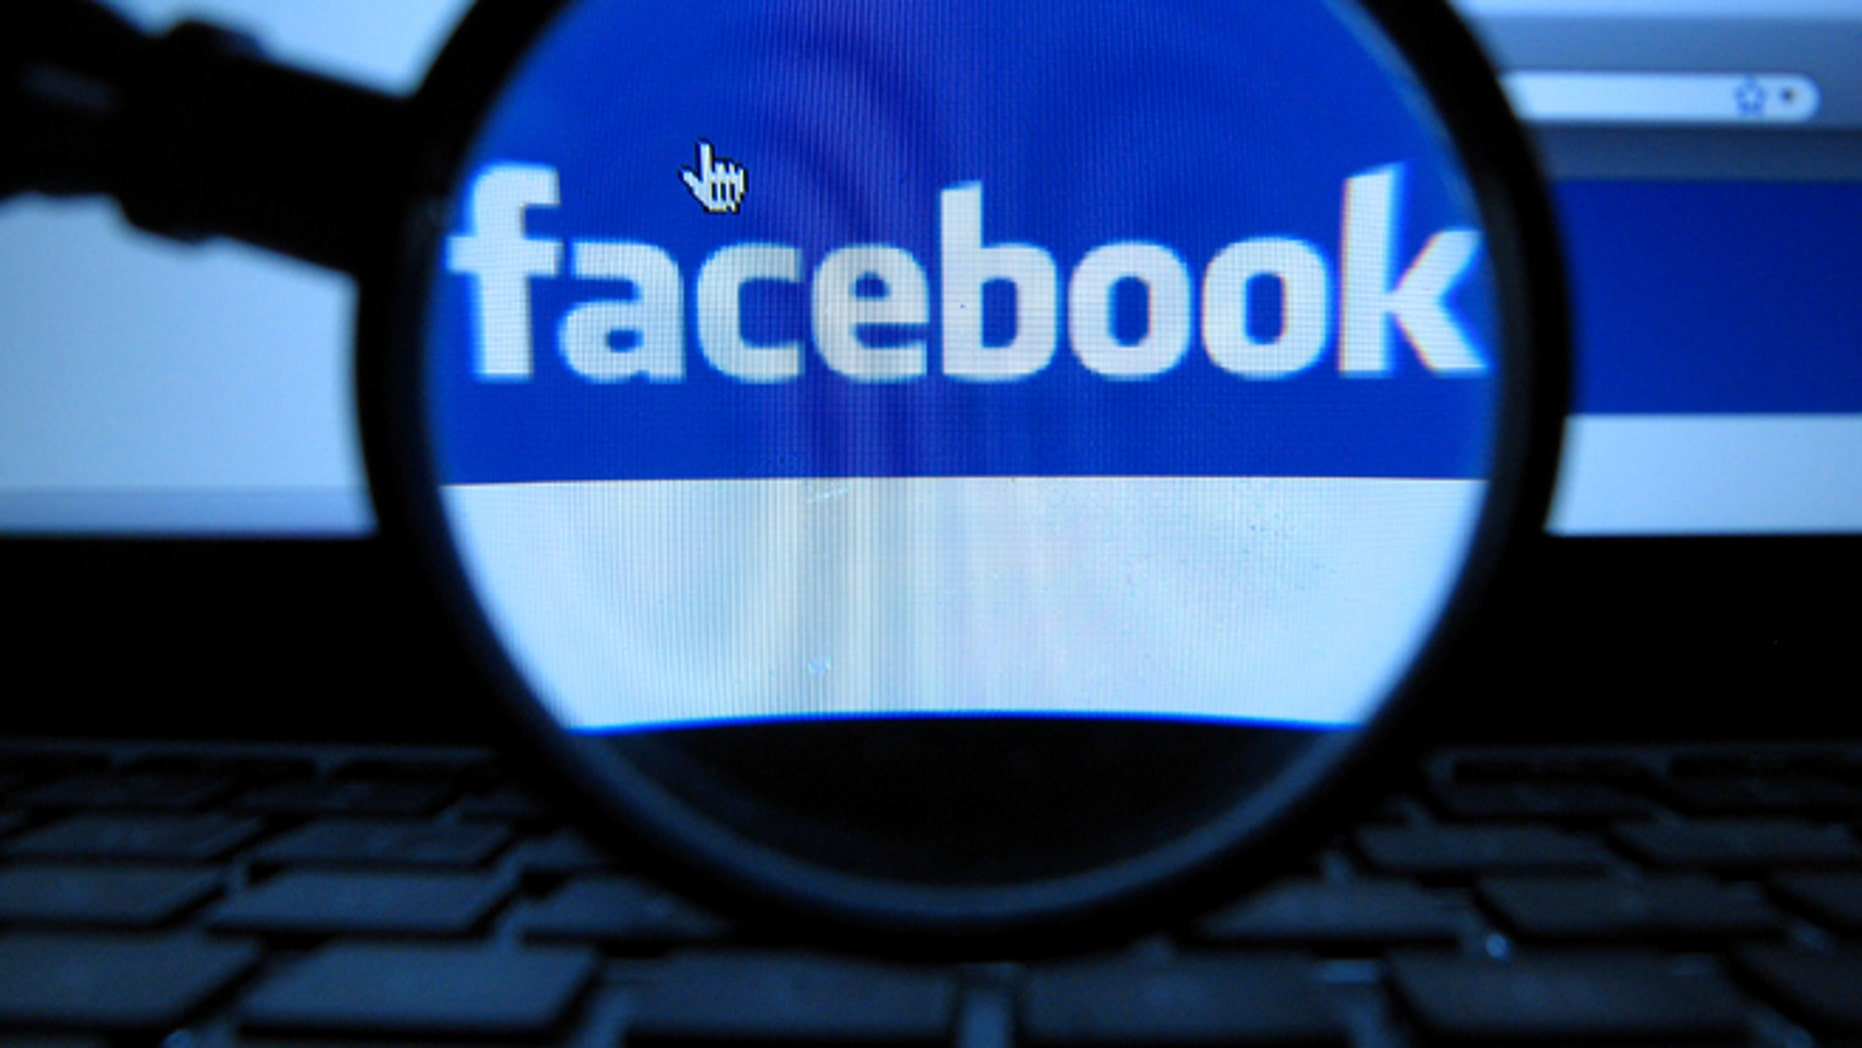 Facebook is proposing to end its practice of letting users vote on changes to its privacy policies, though it will continue to let users comment on proposed updates.